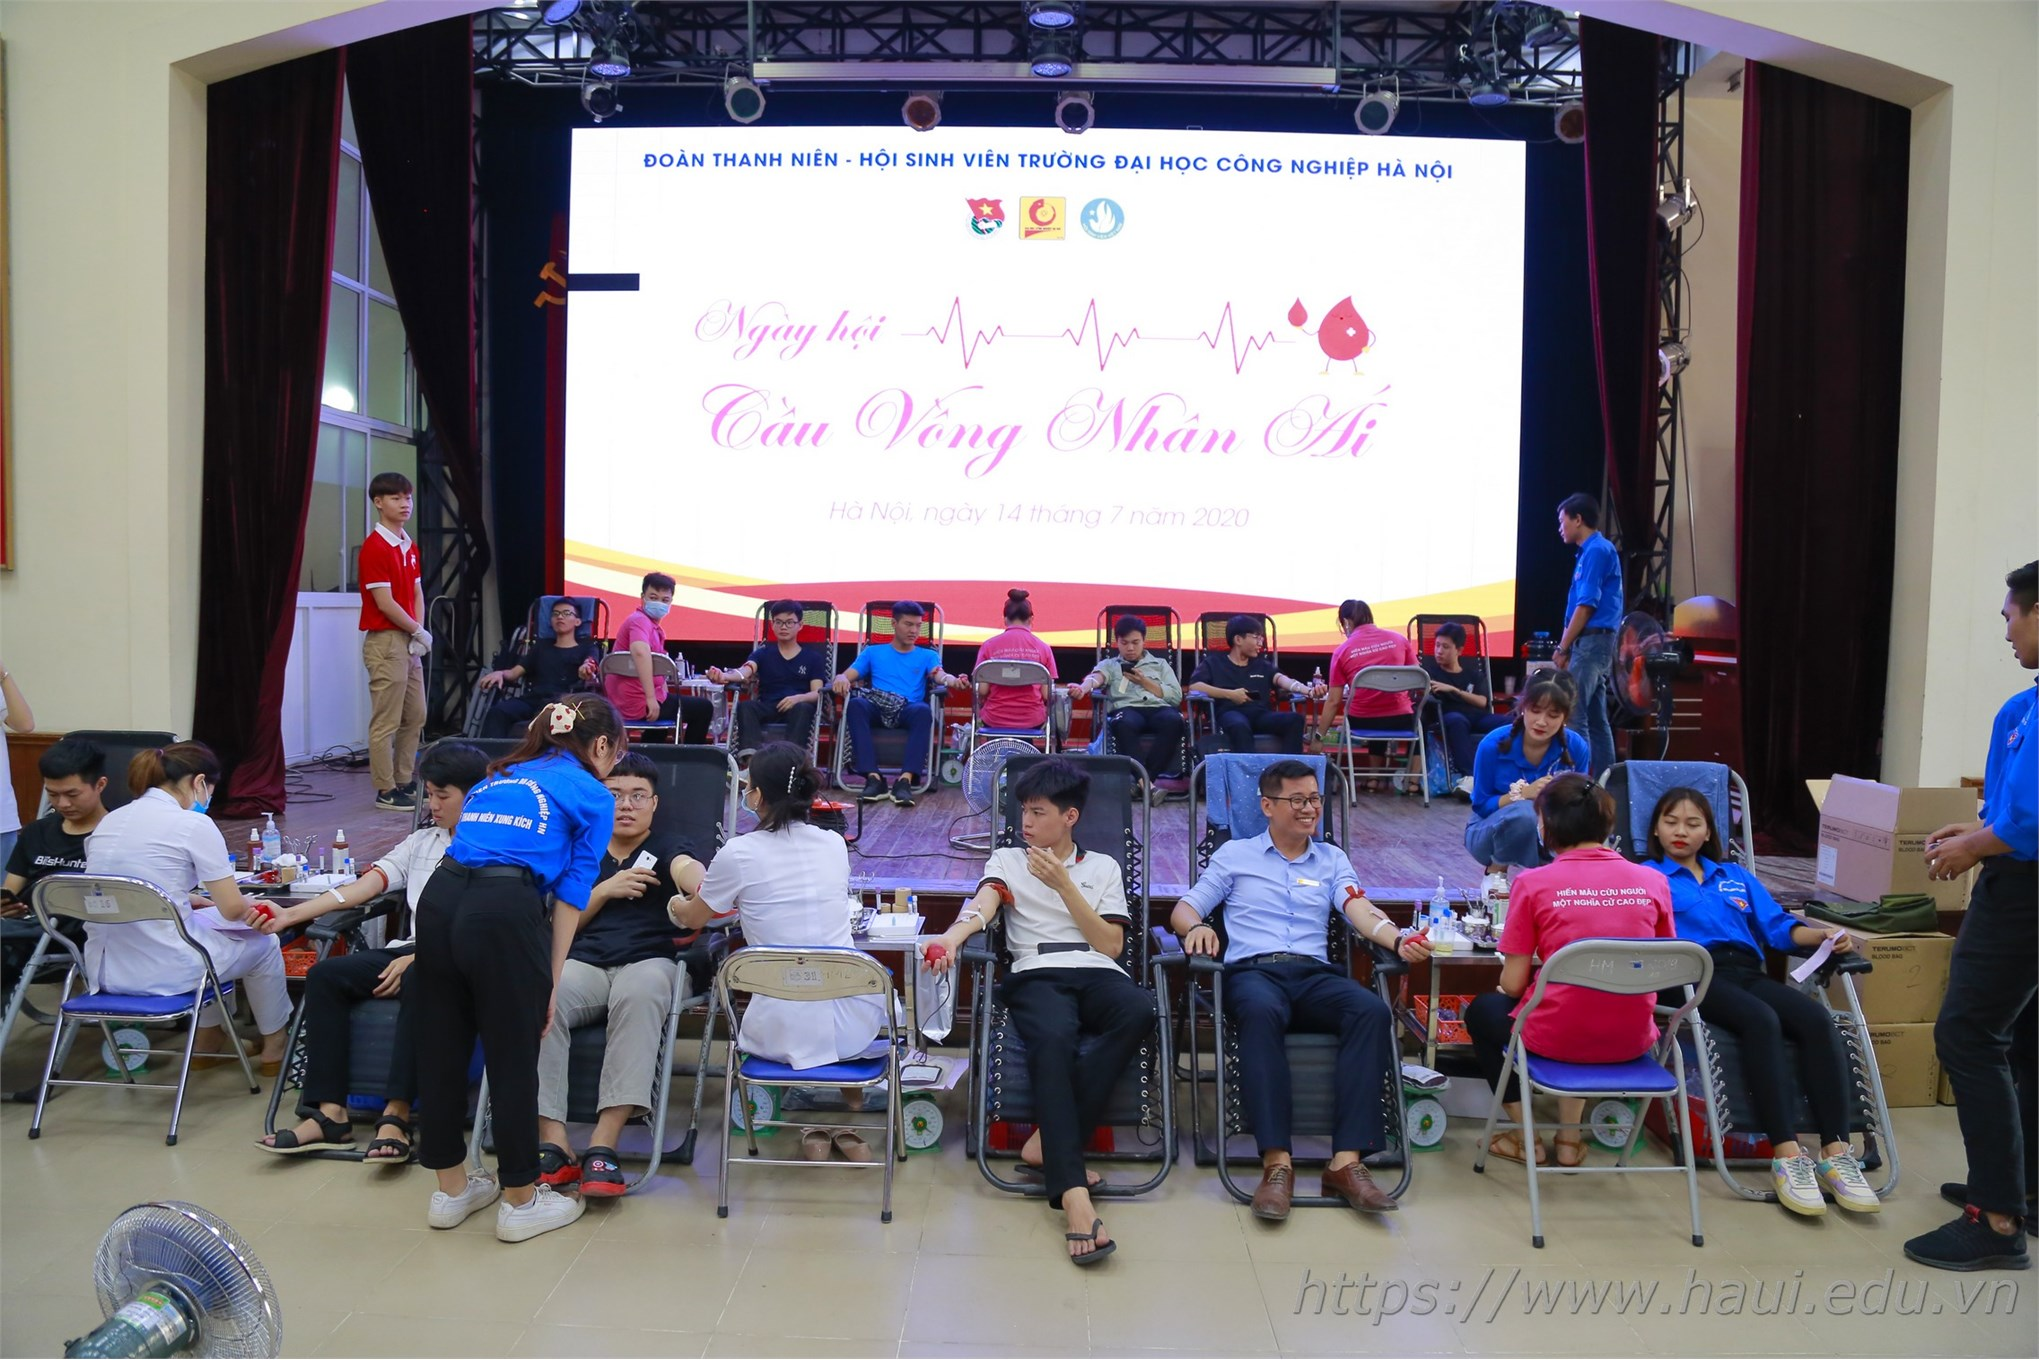 Voluntary Blood Donation Day 2020 at HaUI